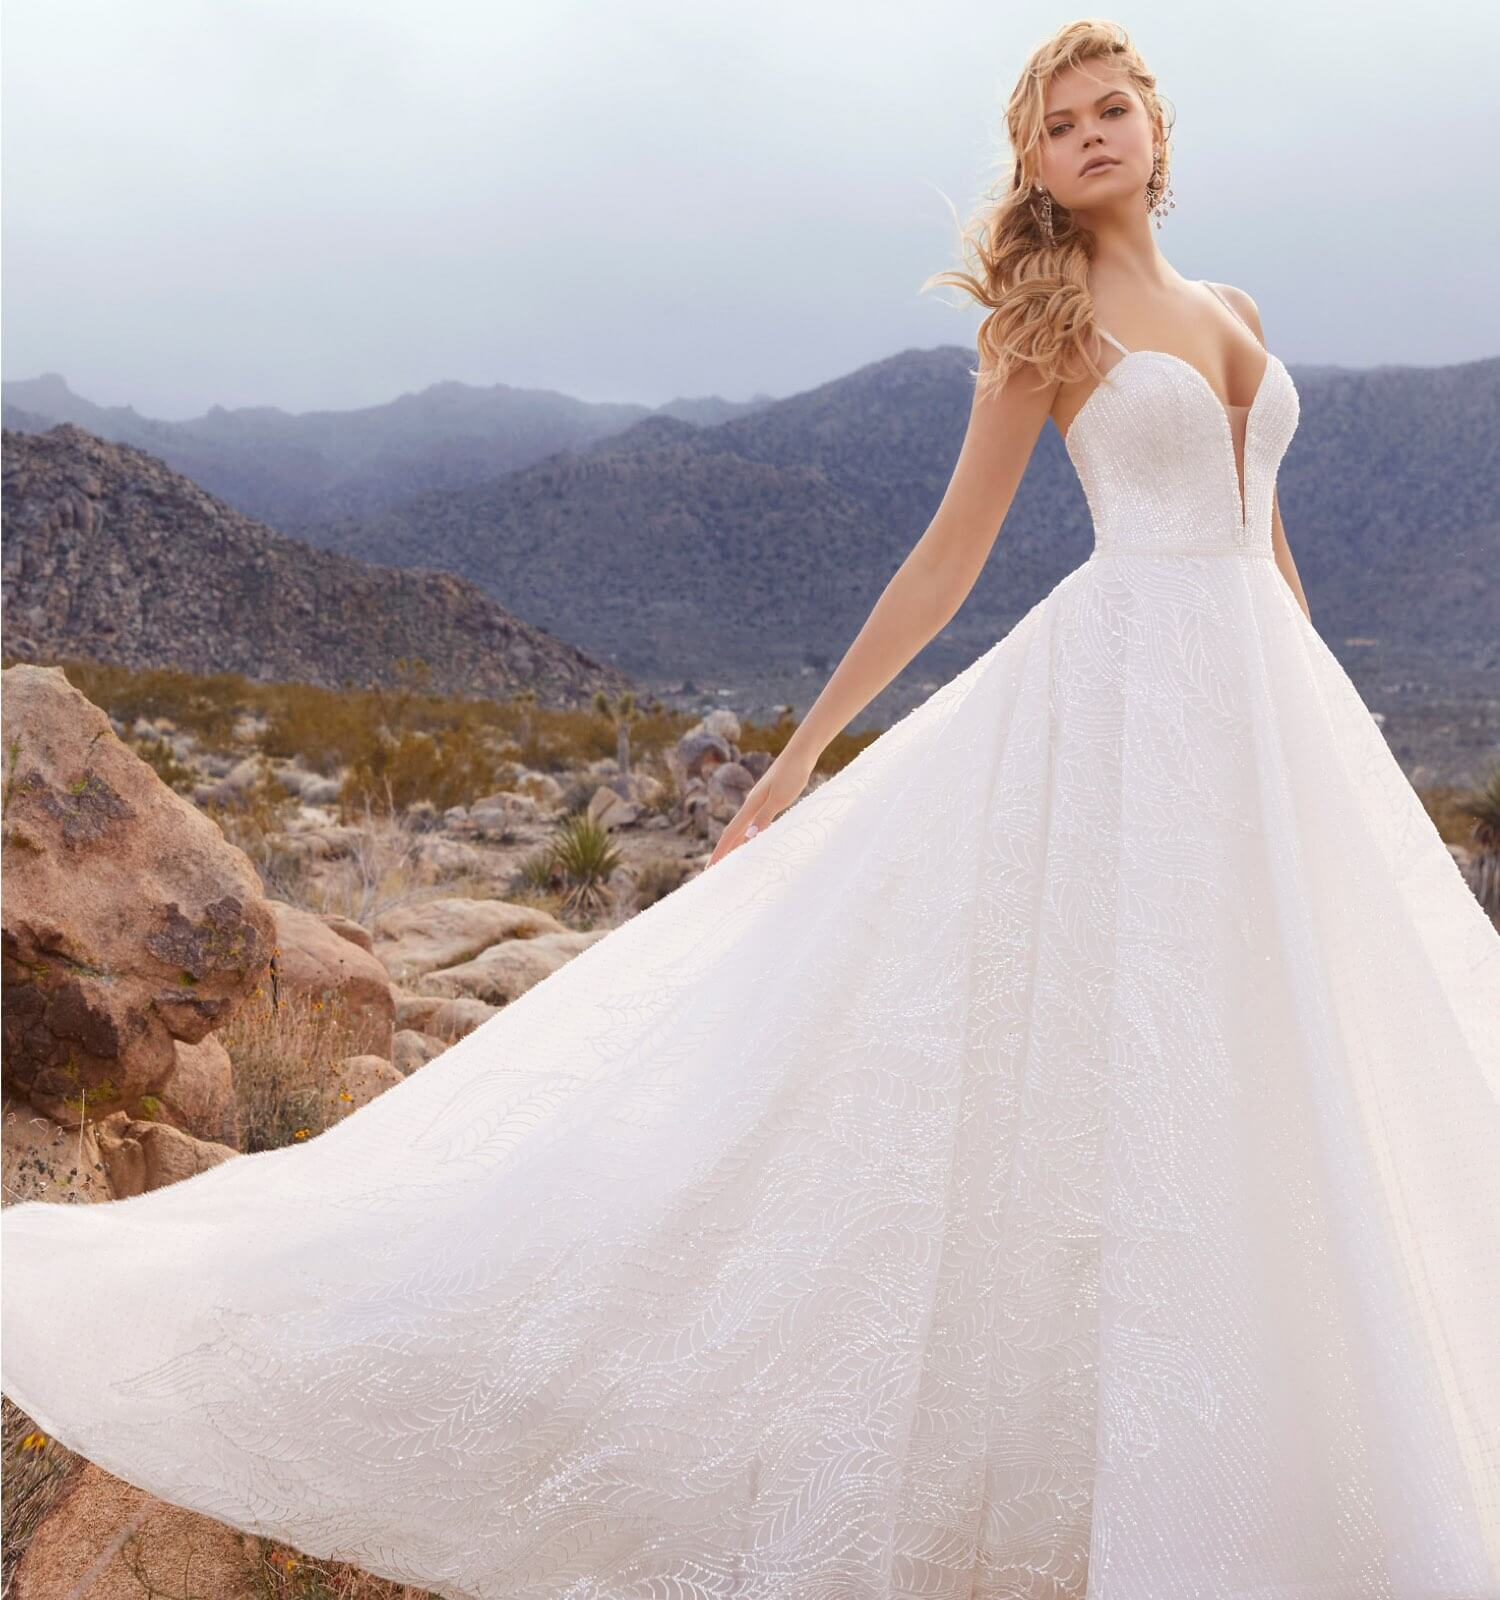 Model wearing ball gown wedding dress in desert background shown on mobile device